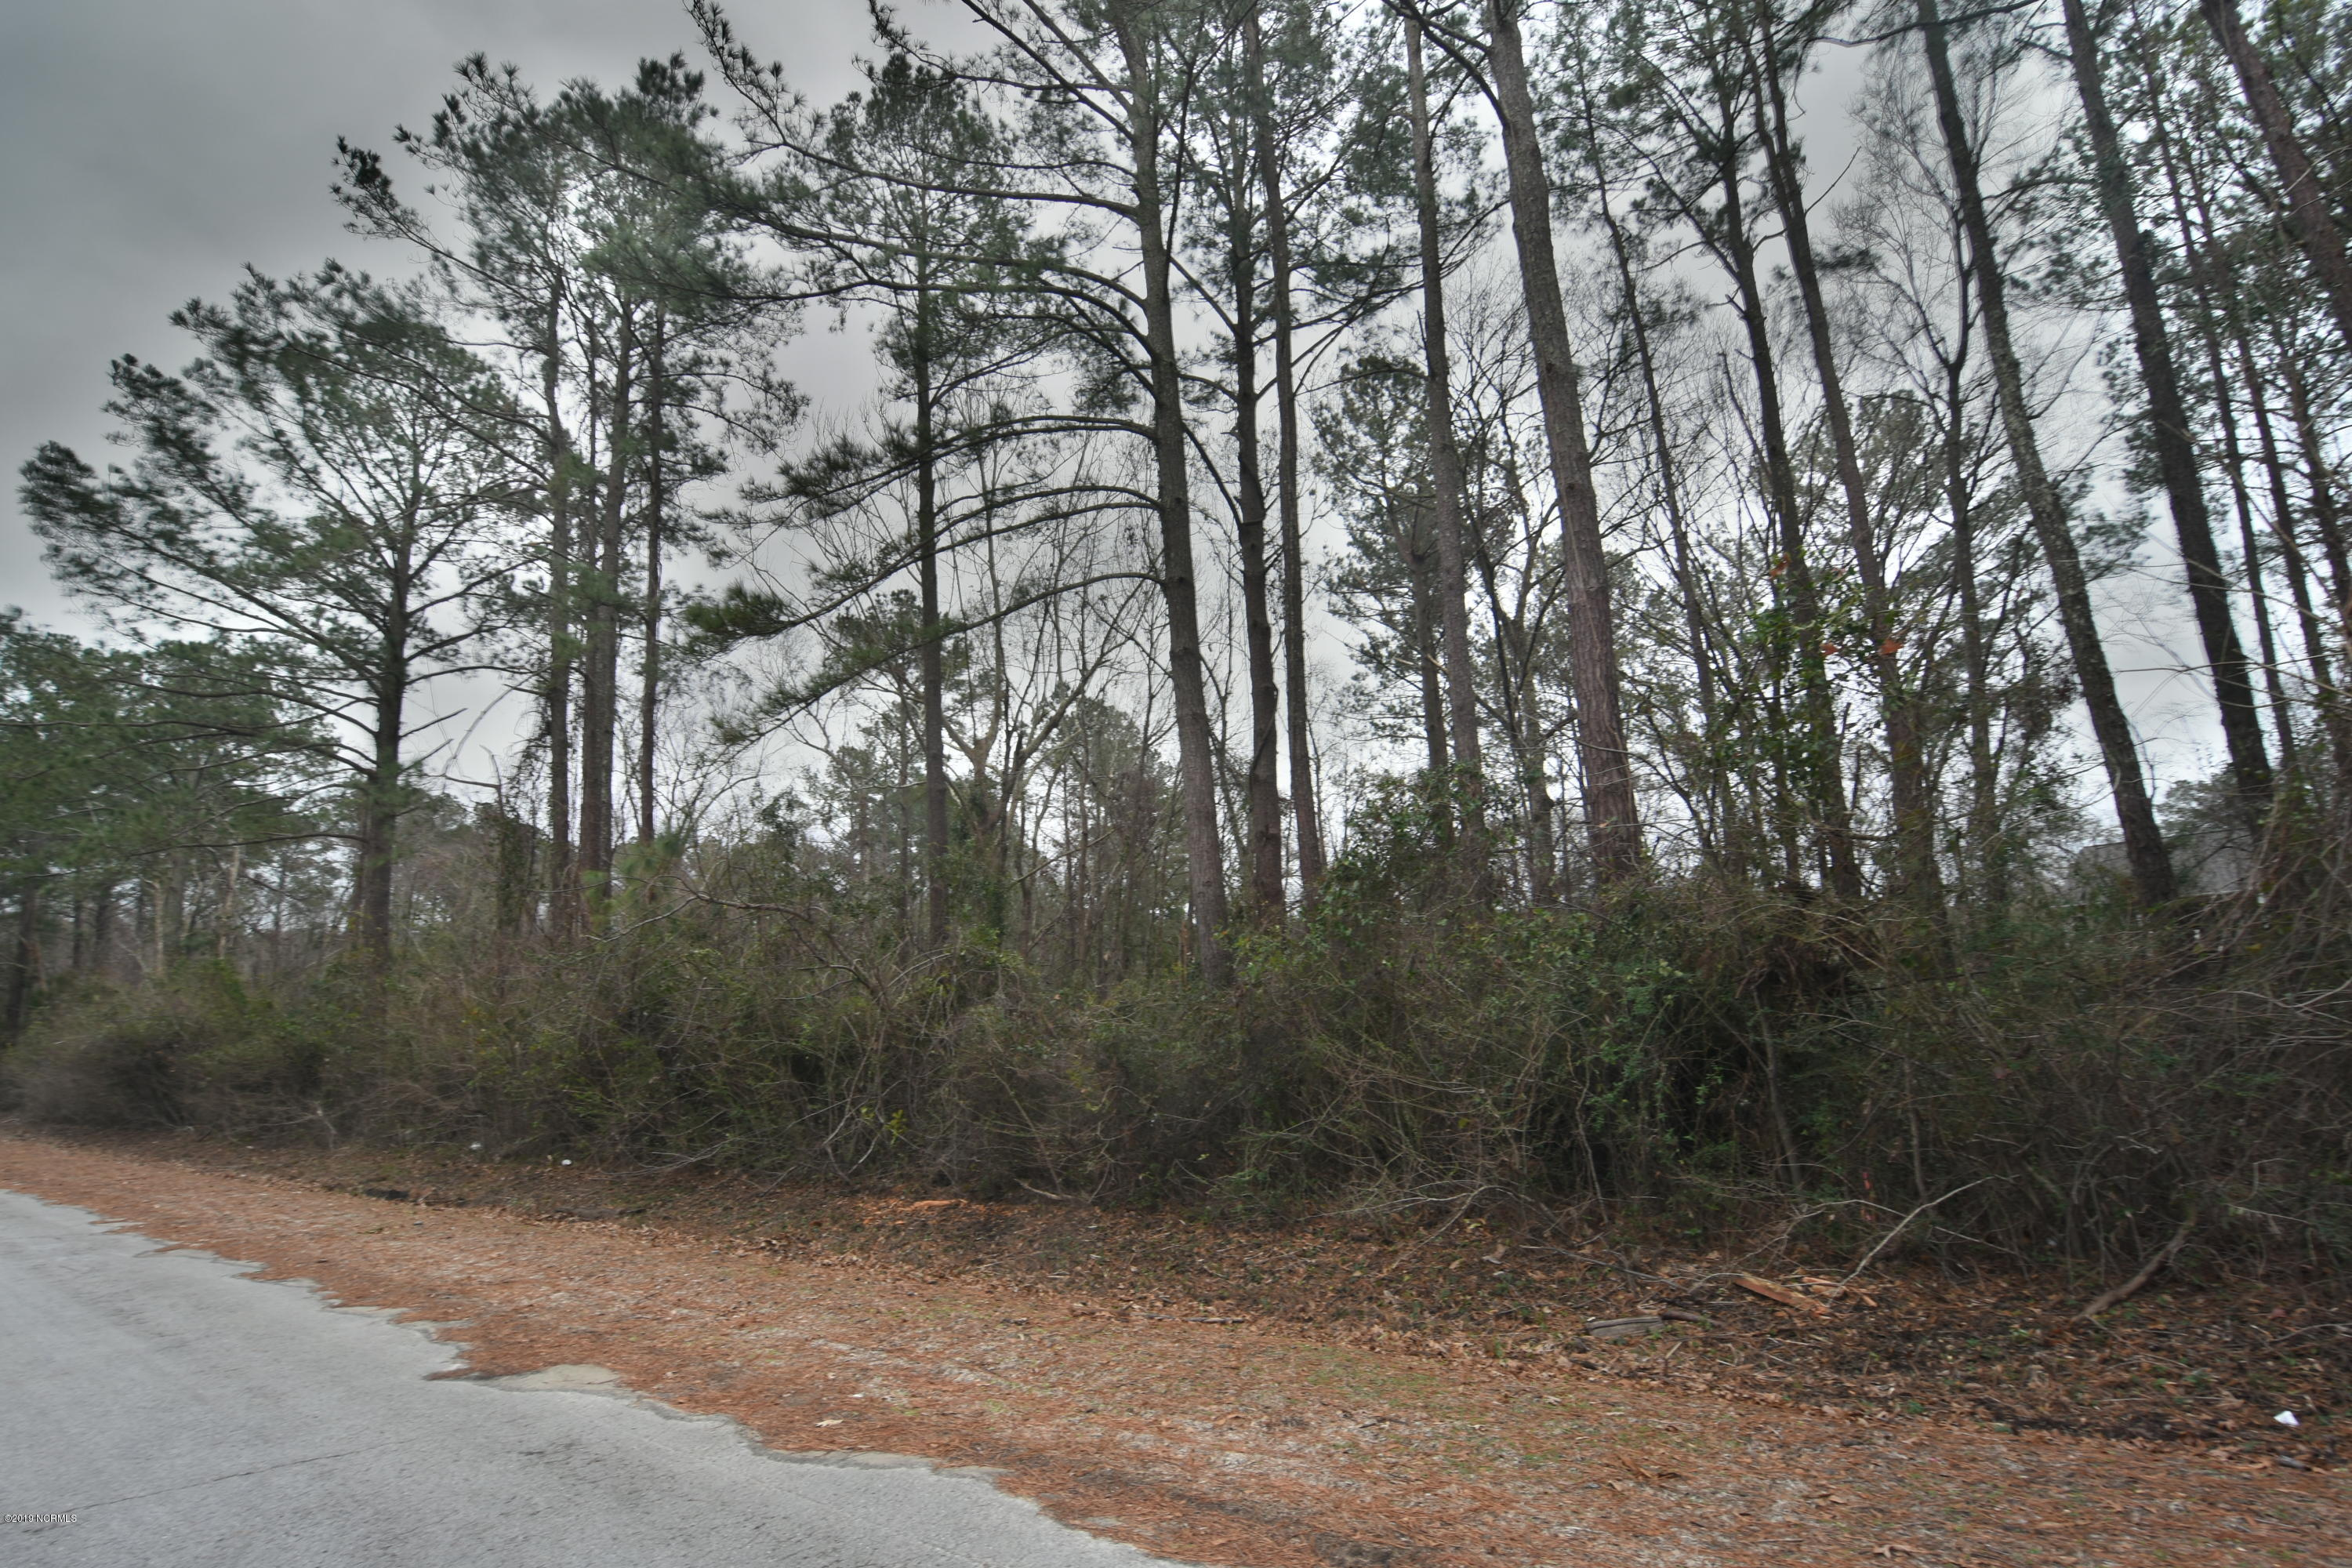 0 Trent Acres Drive, Pollocksville, North Carolina 28573, ,Residential land,For sale,Trent Acres,100146120